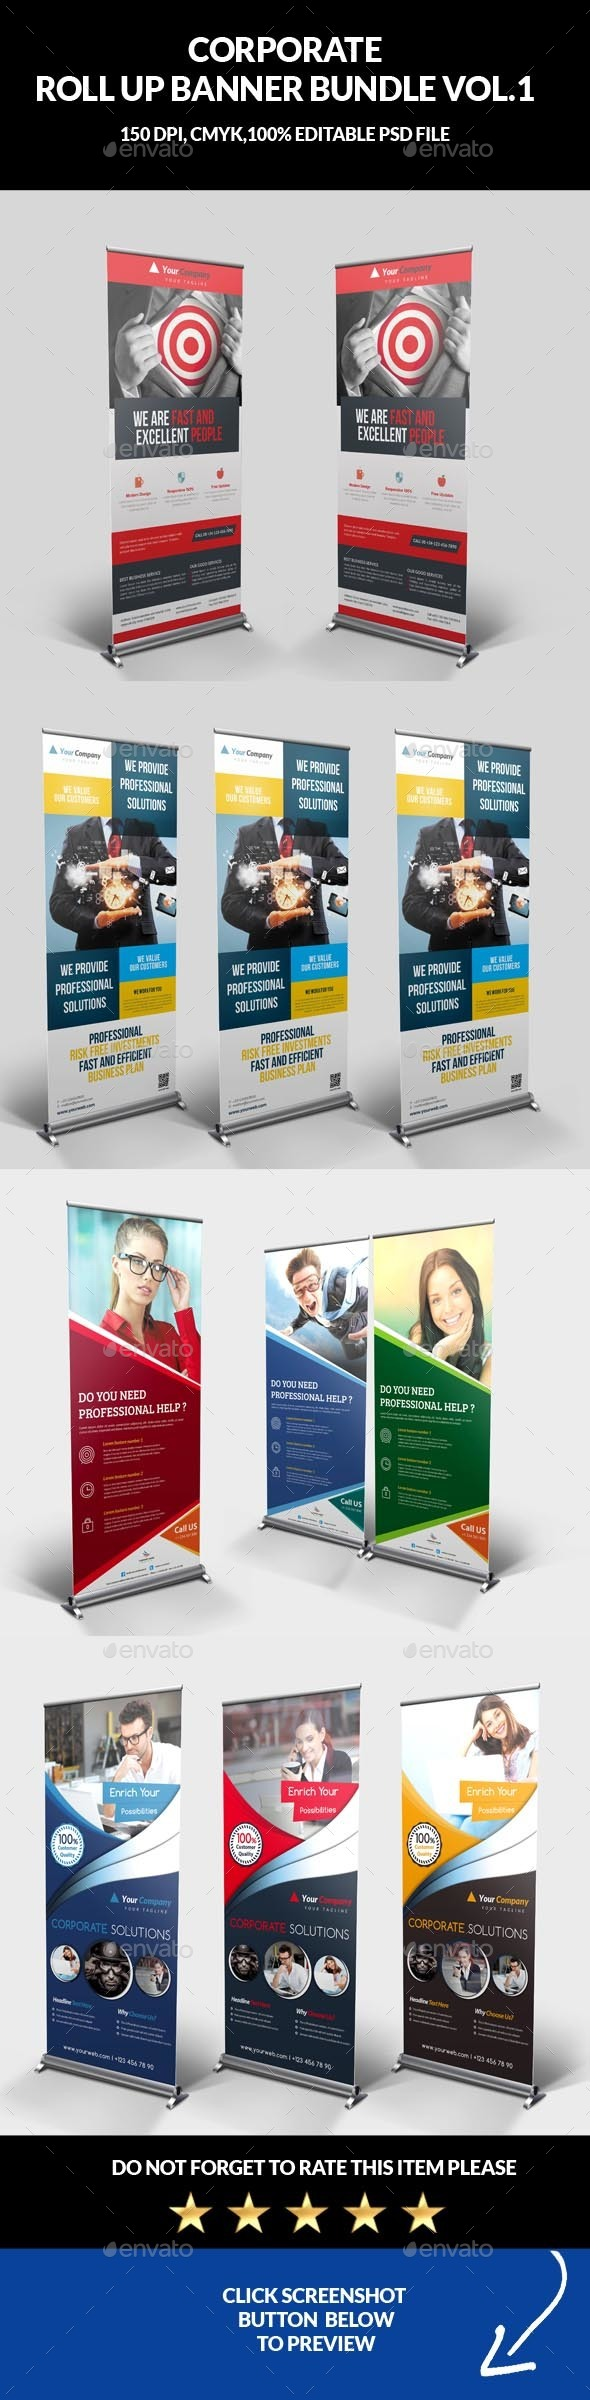 Corporate Roll Up Banner Bundle Vol.1 - Signage Print Templates